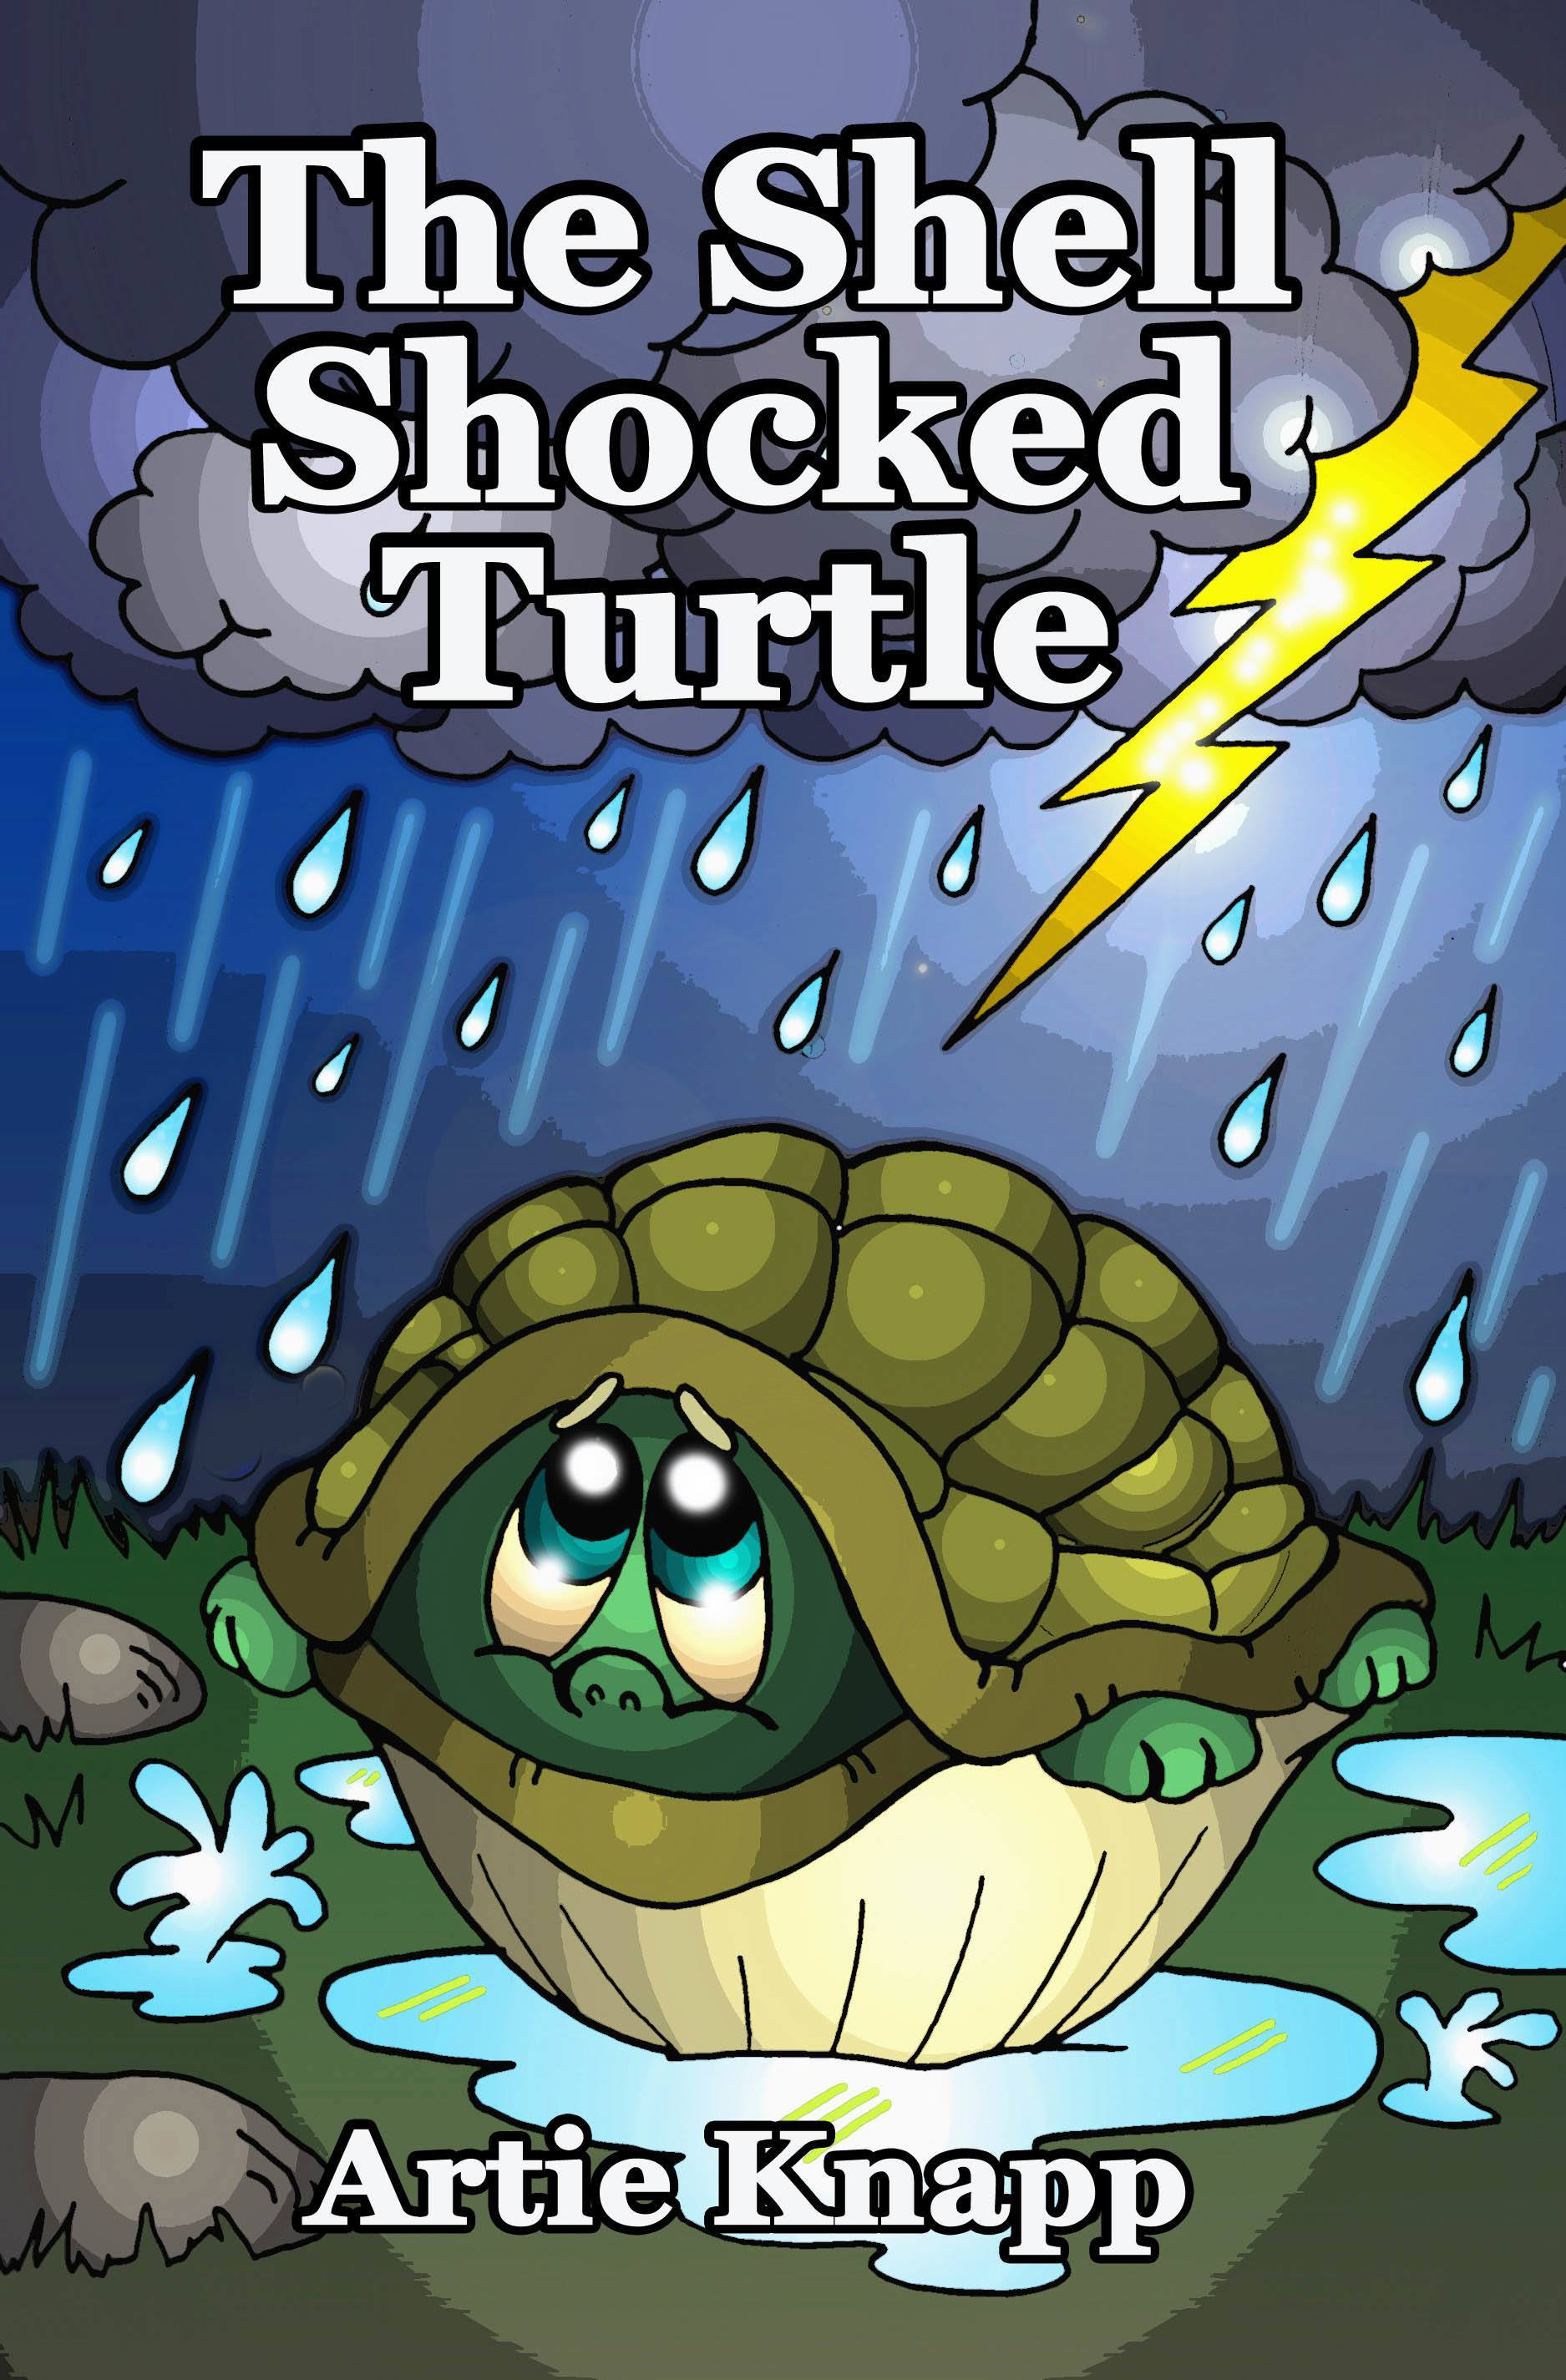 The Shell Shocked Turtle